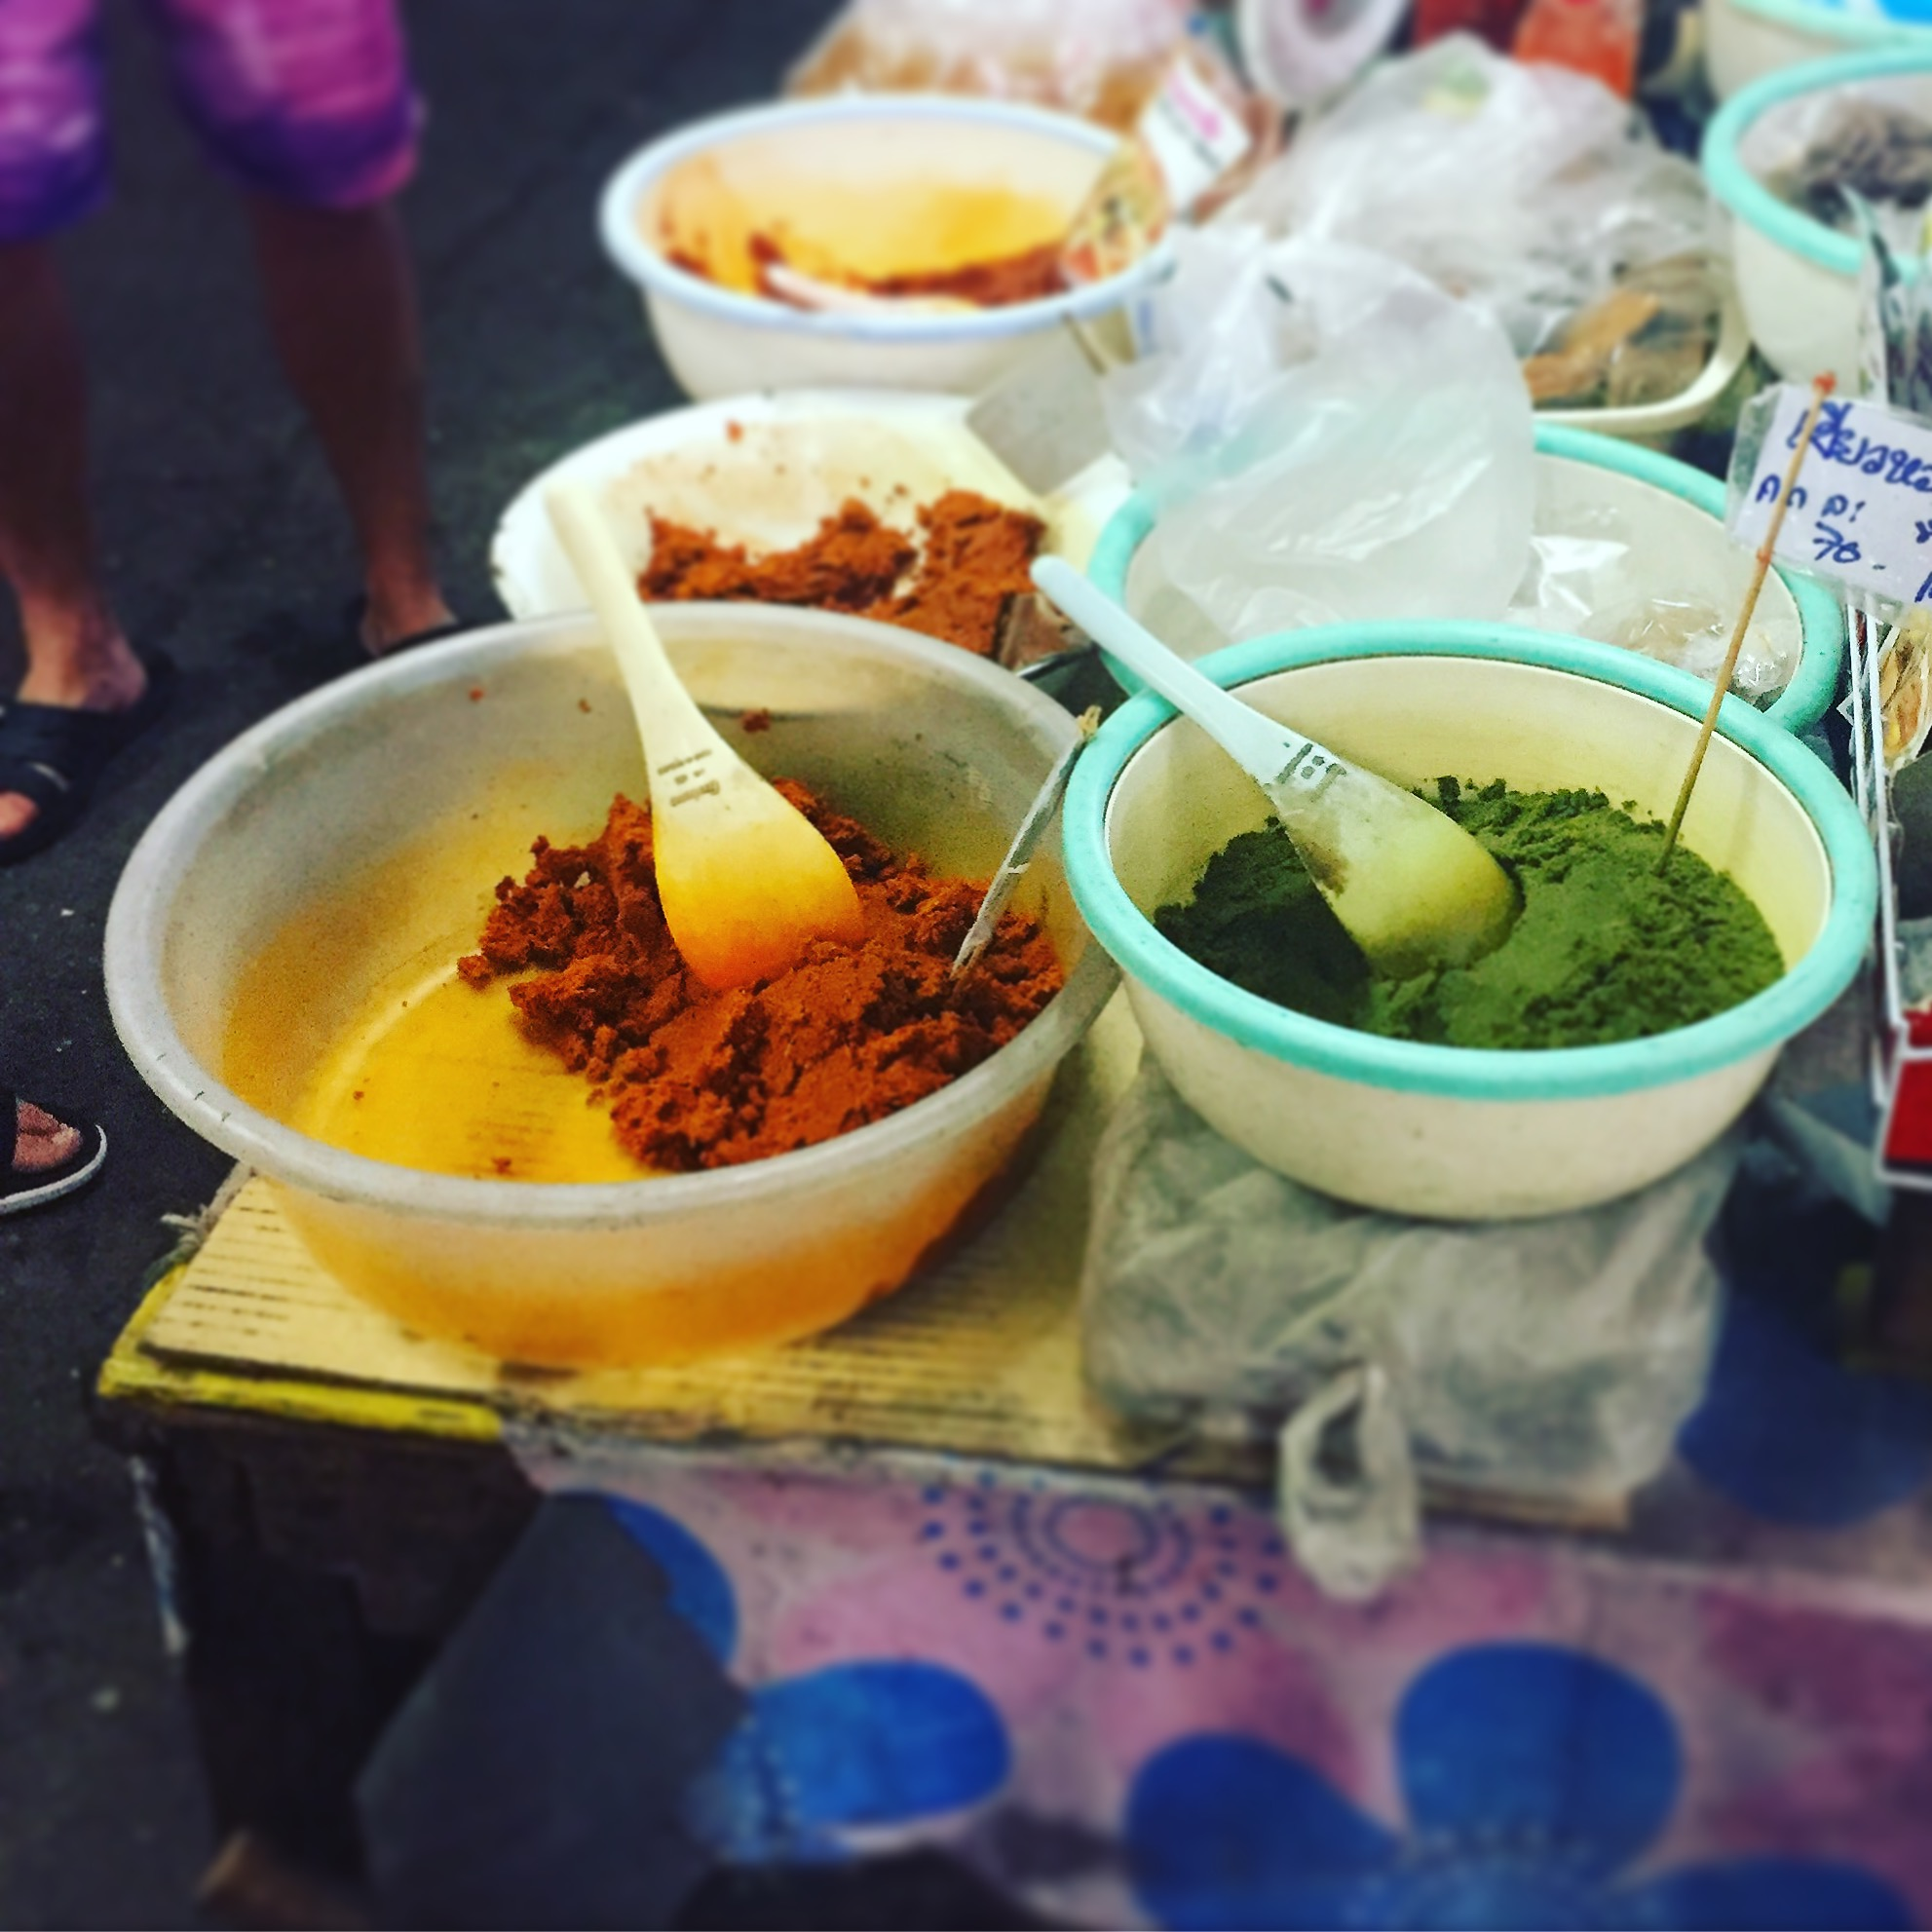 The local food market - Ming Muang Market